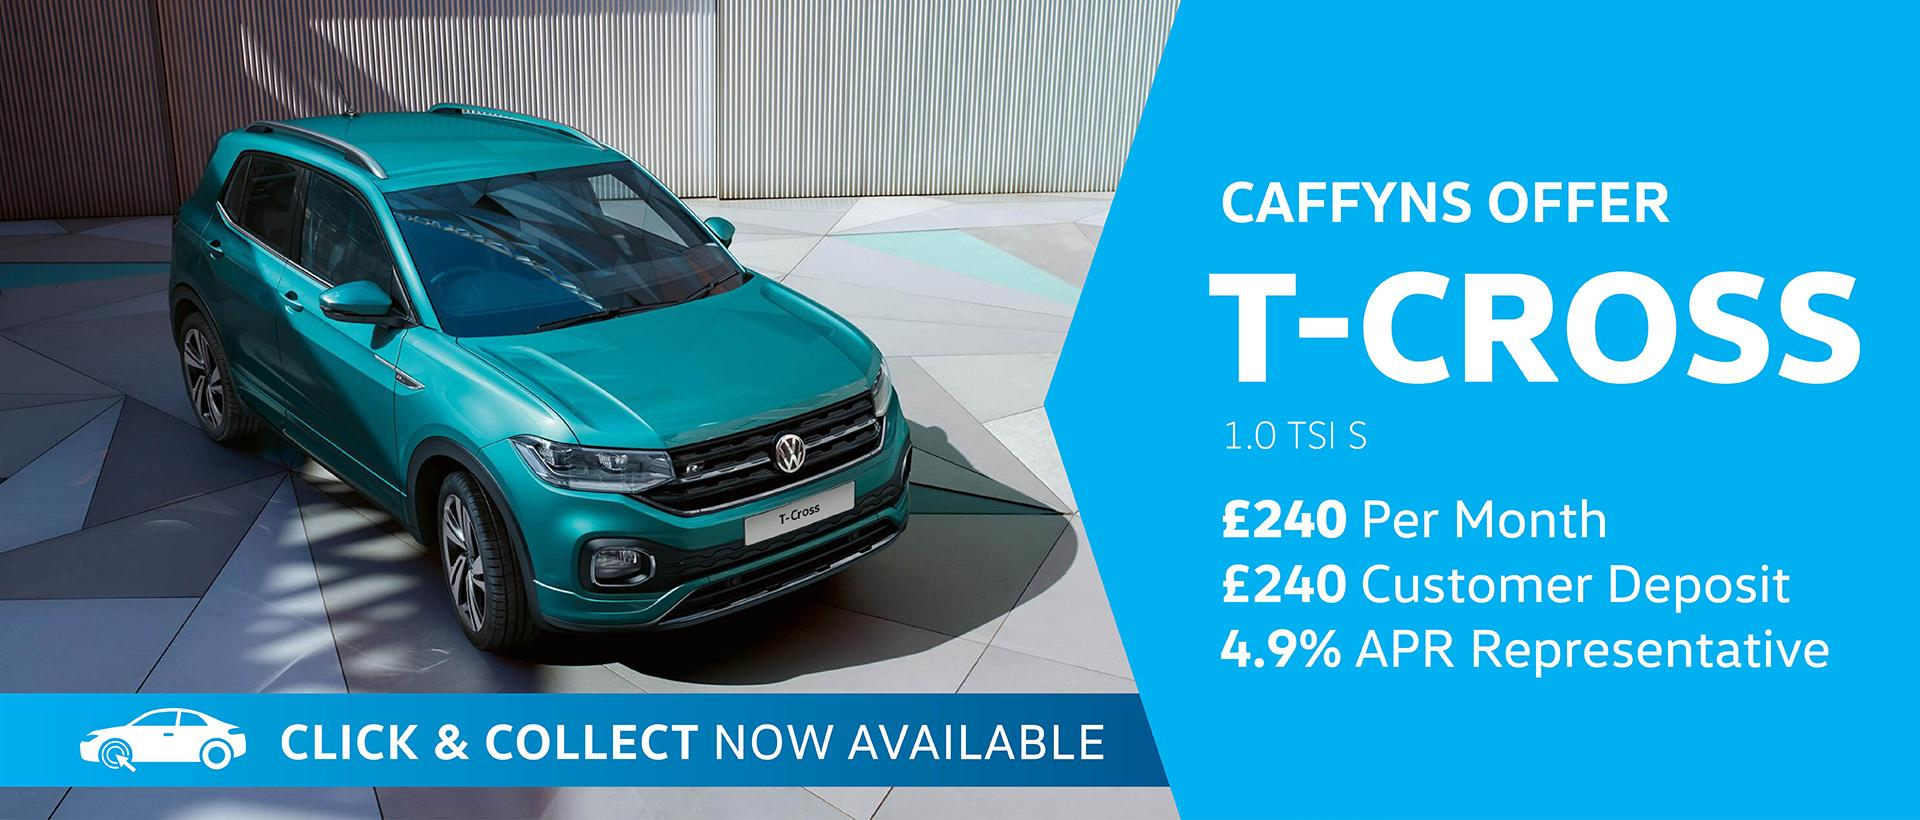 Caffyns Offer - Volkswagen T-Cross